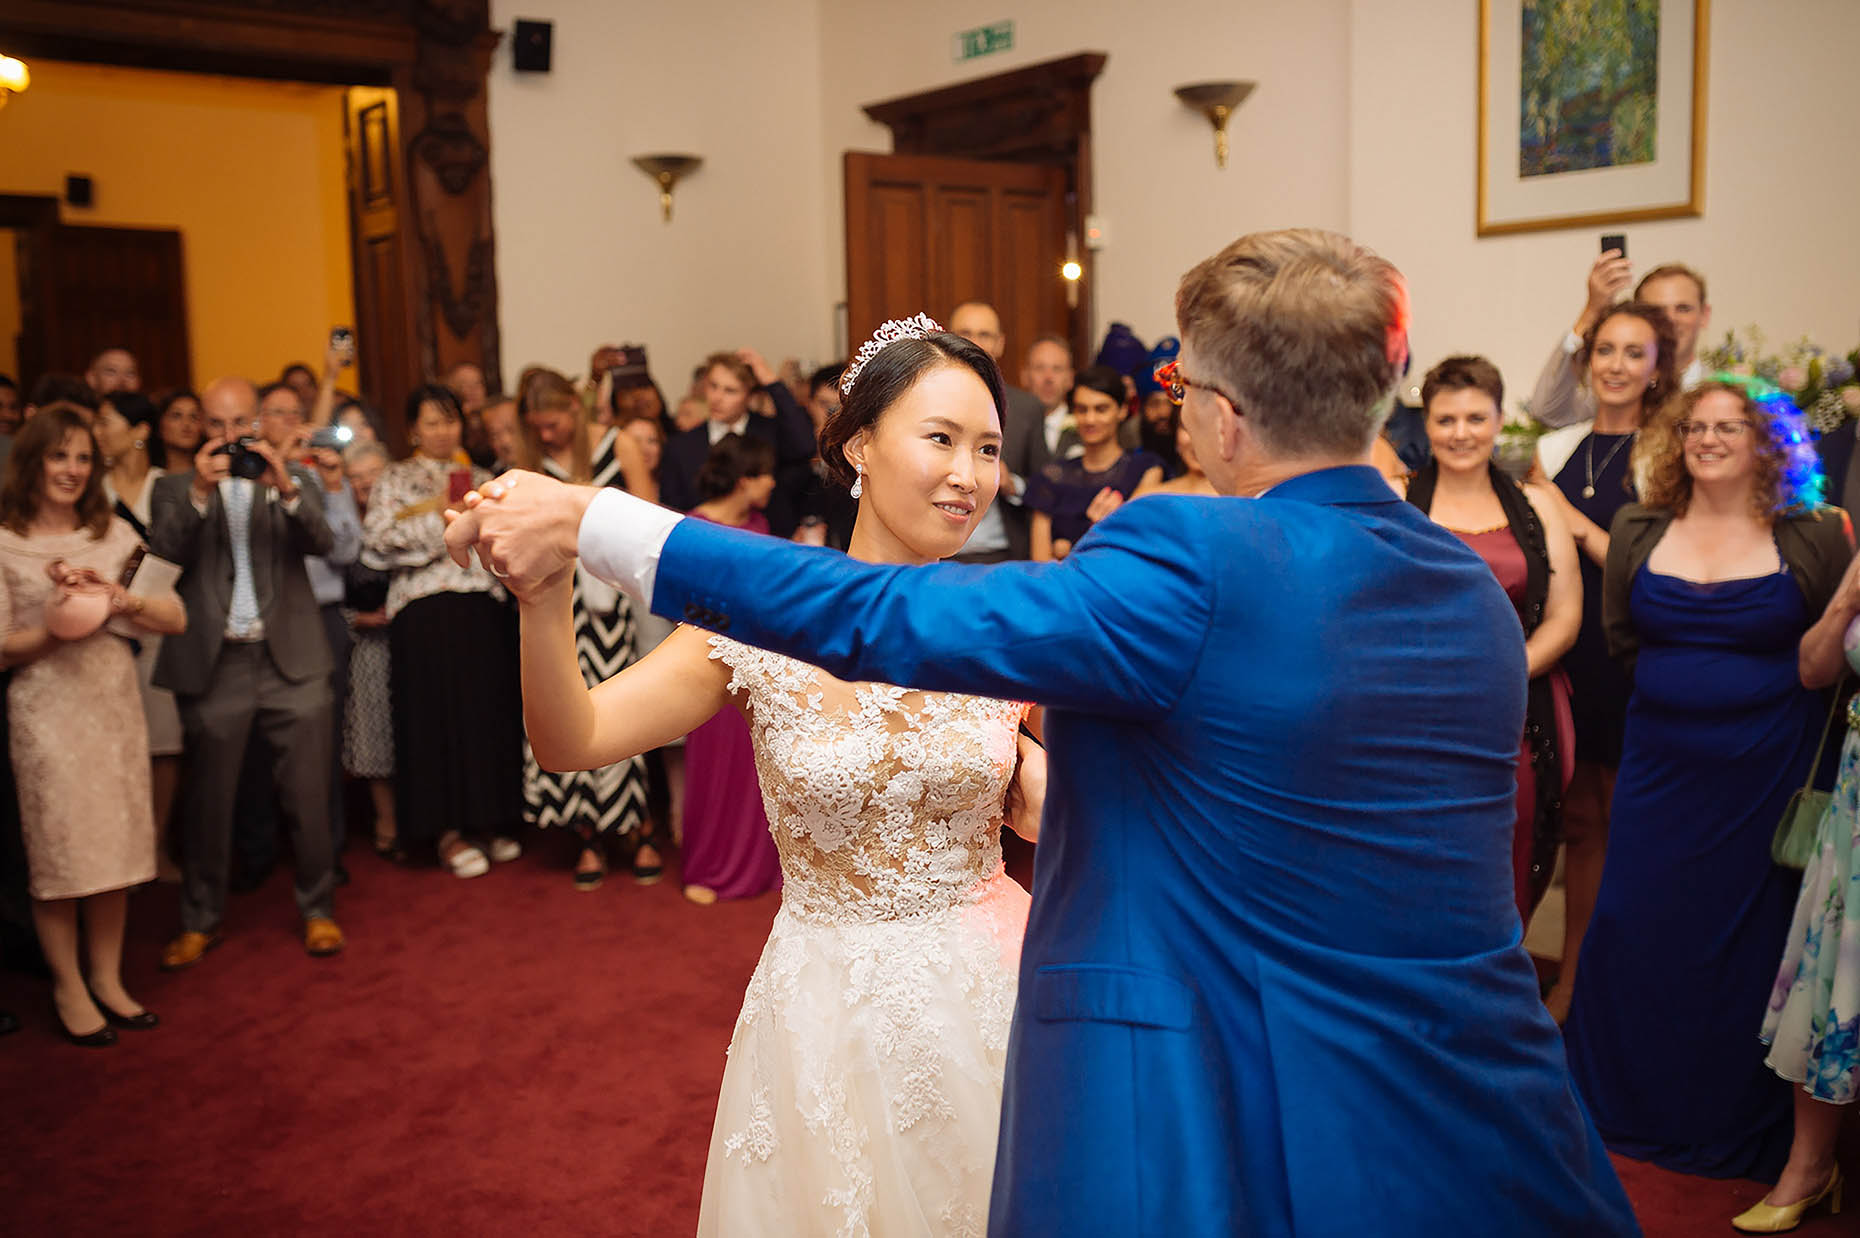 chay-felix-first-dance-beaumanor-hall-leicestershire-wedding-photography-28